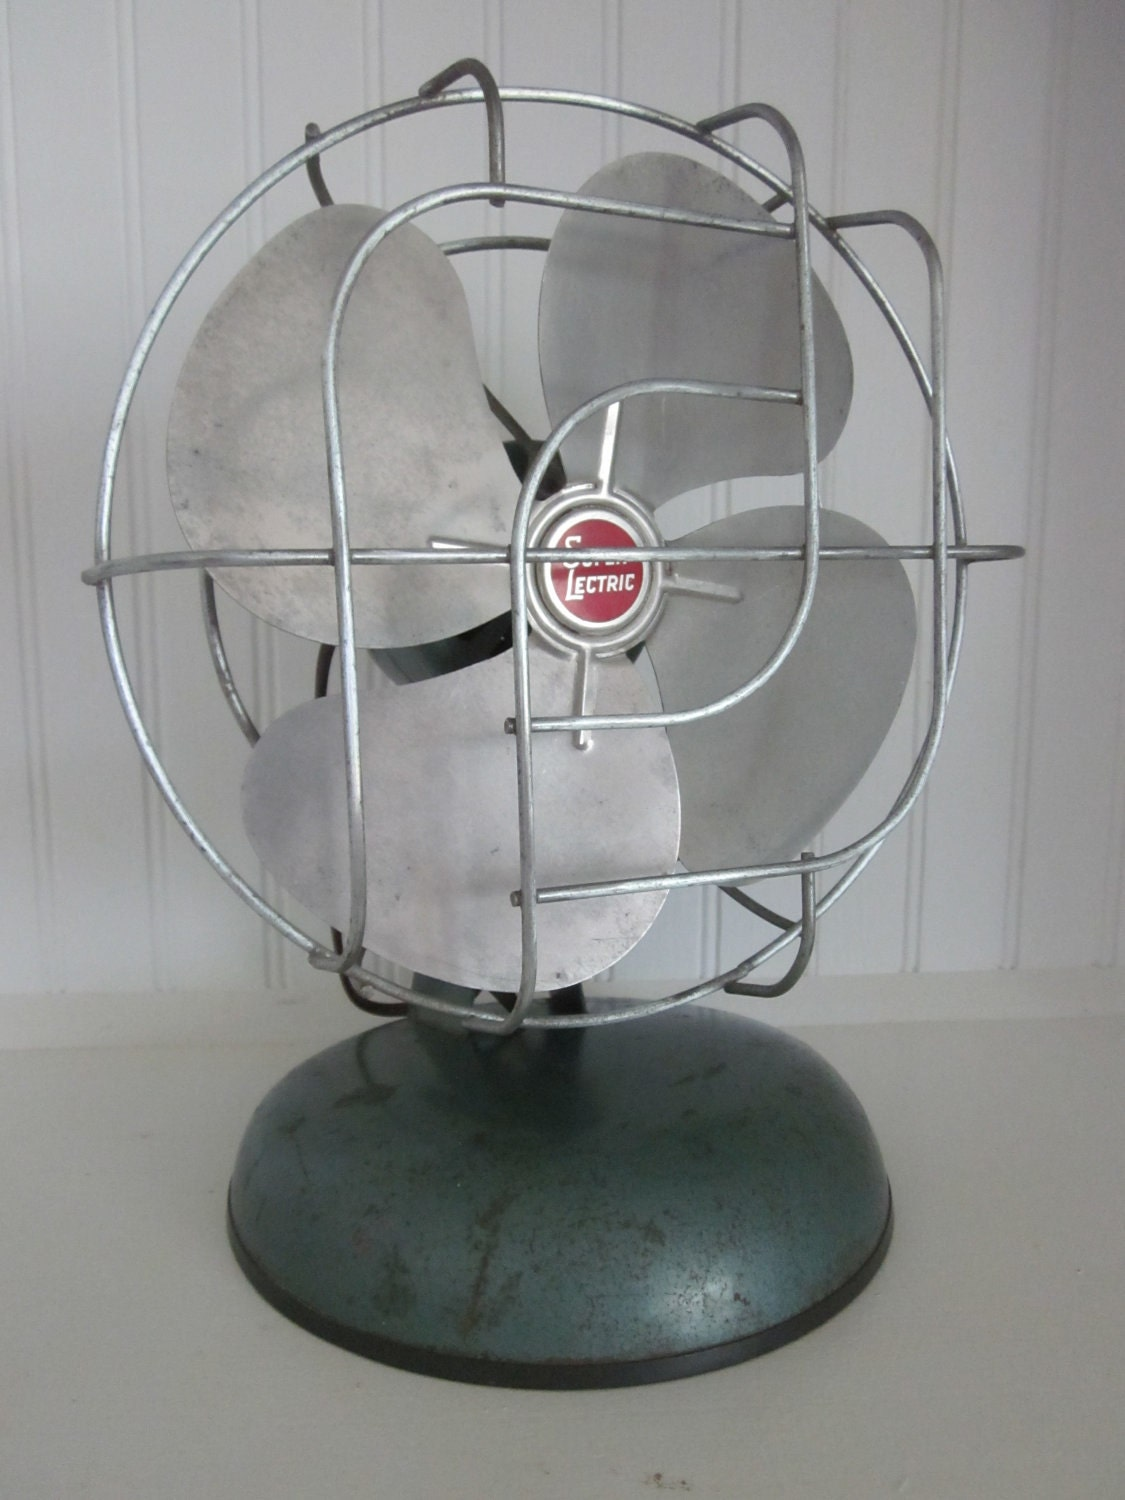 Vintage Electric Fan Industrial Chic Green Metallic Shabby